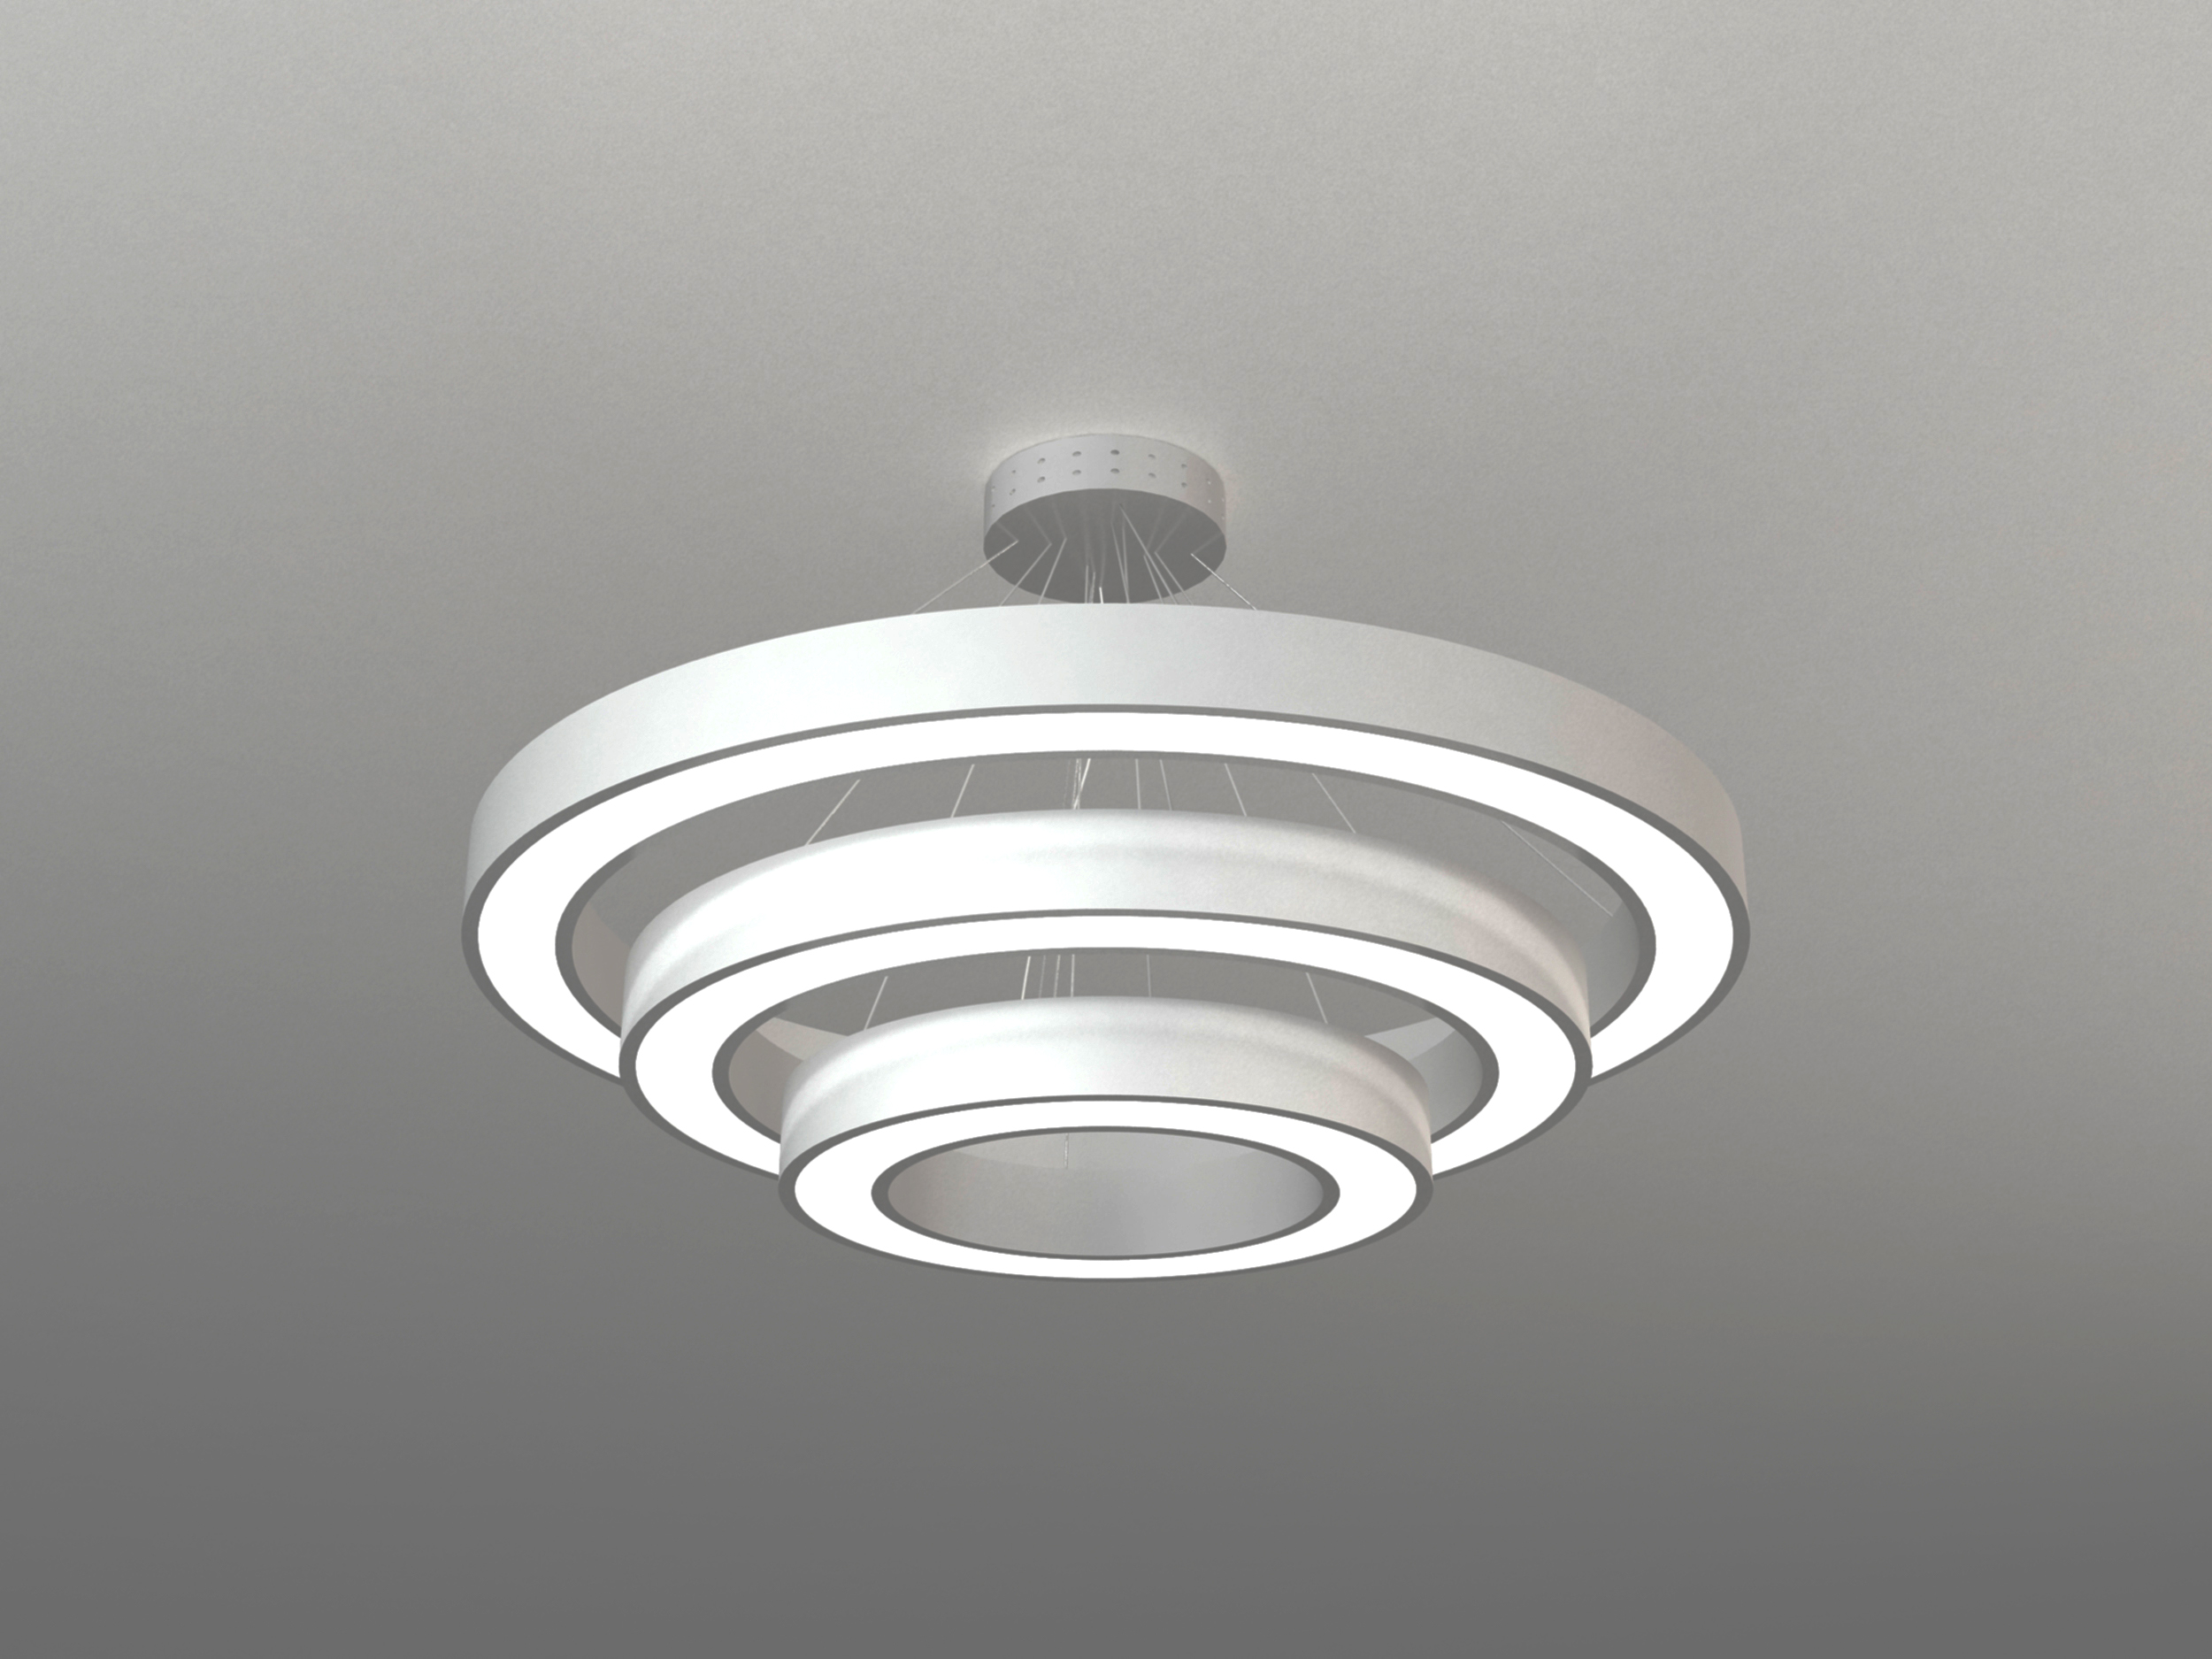 ARCHITECTURAL LIGHT - RING SERIES